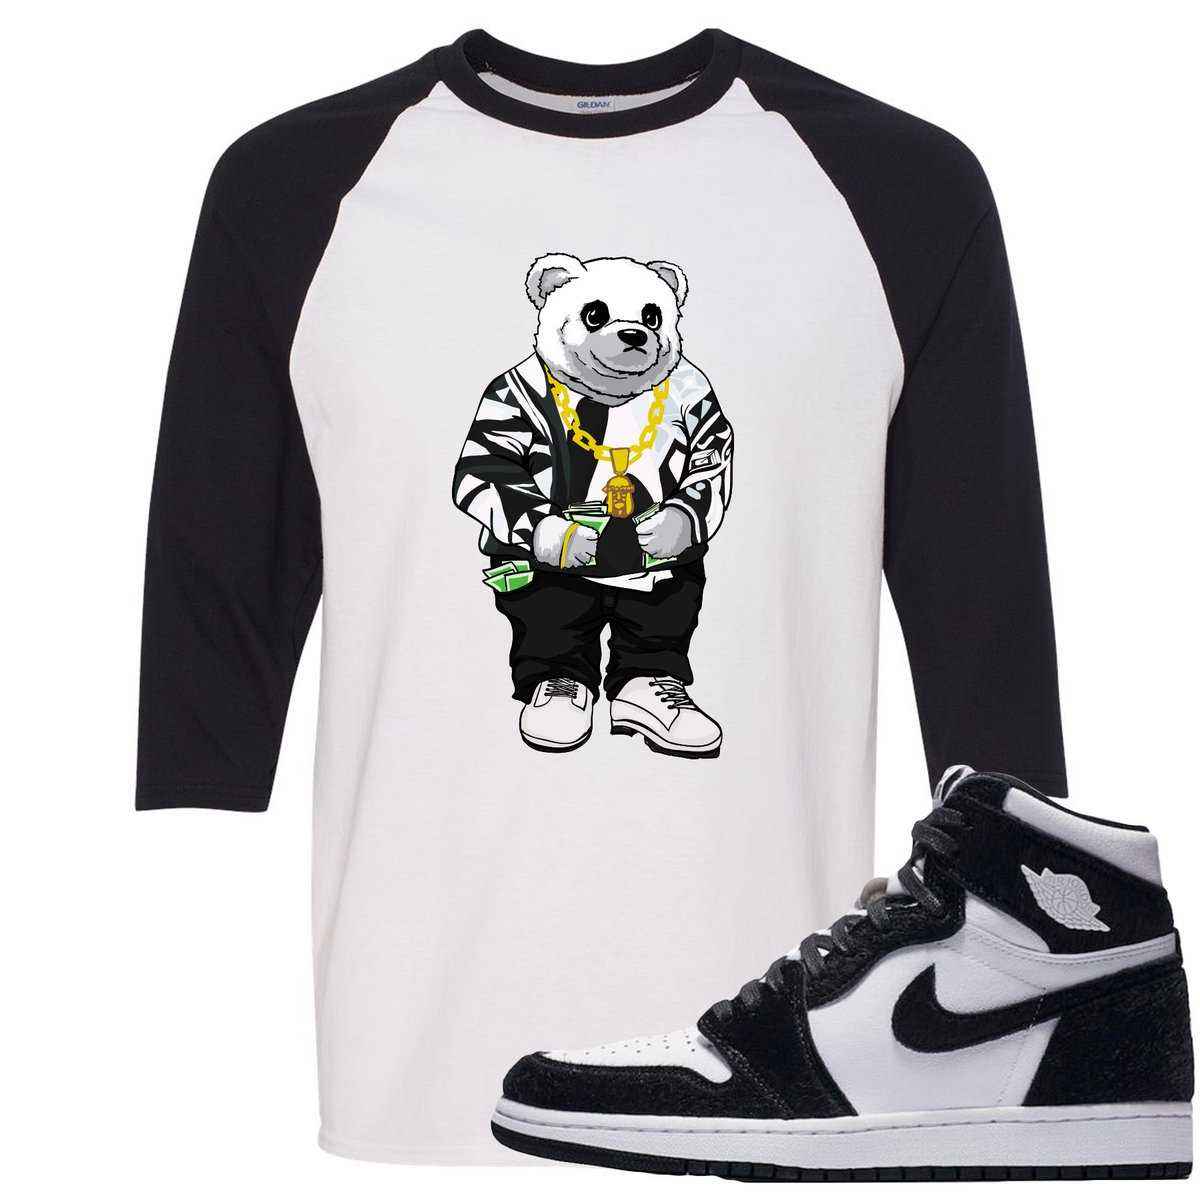 78b5bd84bb1075 This Biggie Bear White and Black Ragalan T-Shirt from Foot Clan is a perfect